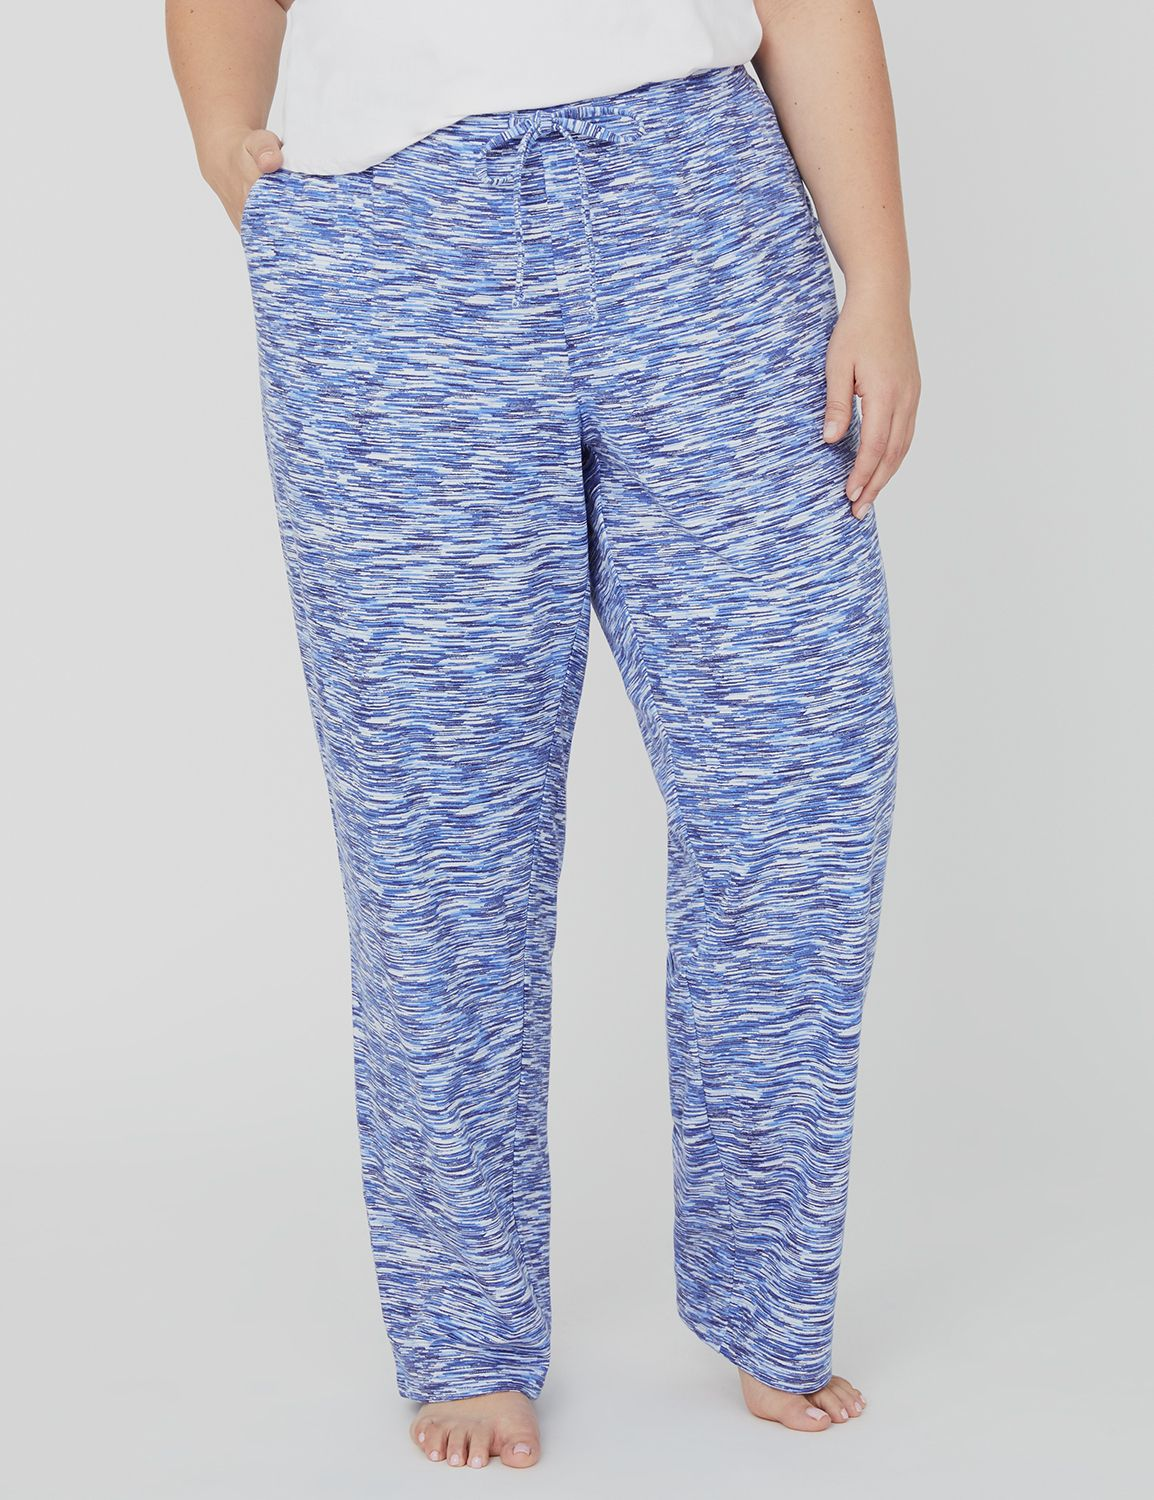 Spacedye Terry Sleep Pant 1088019 Cold/Temp A/O Printed Space MP-300096211